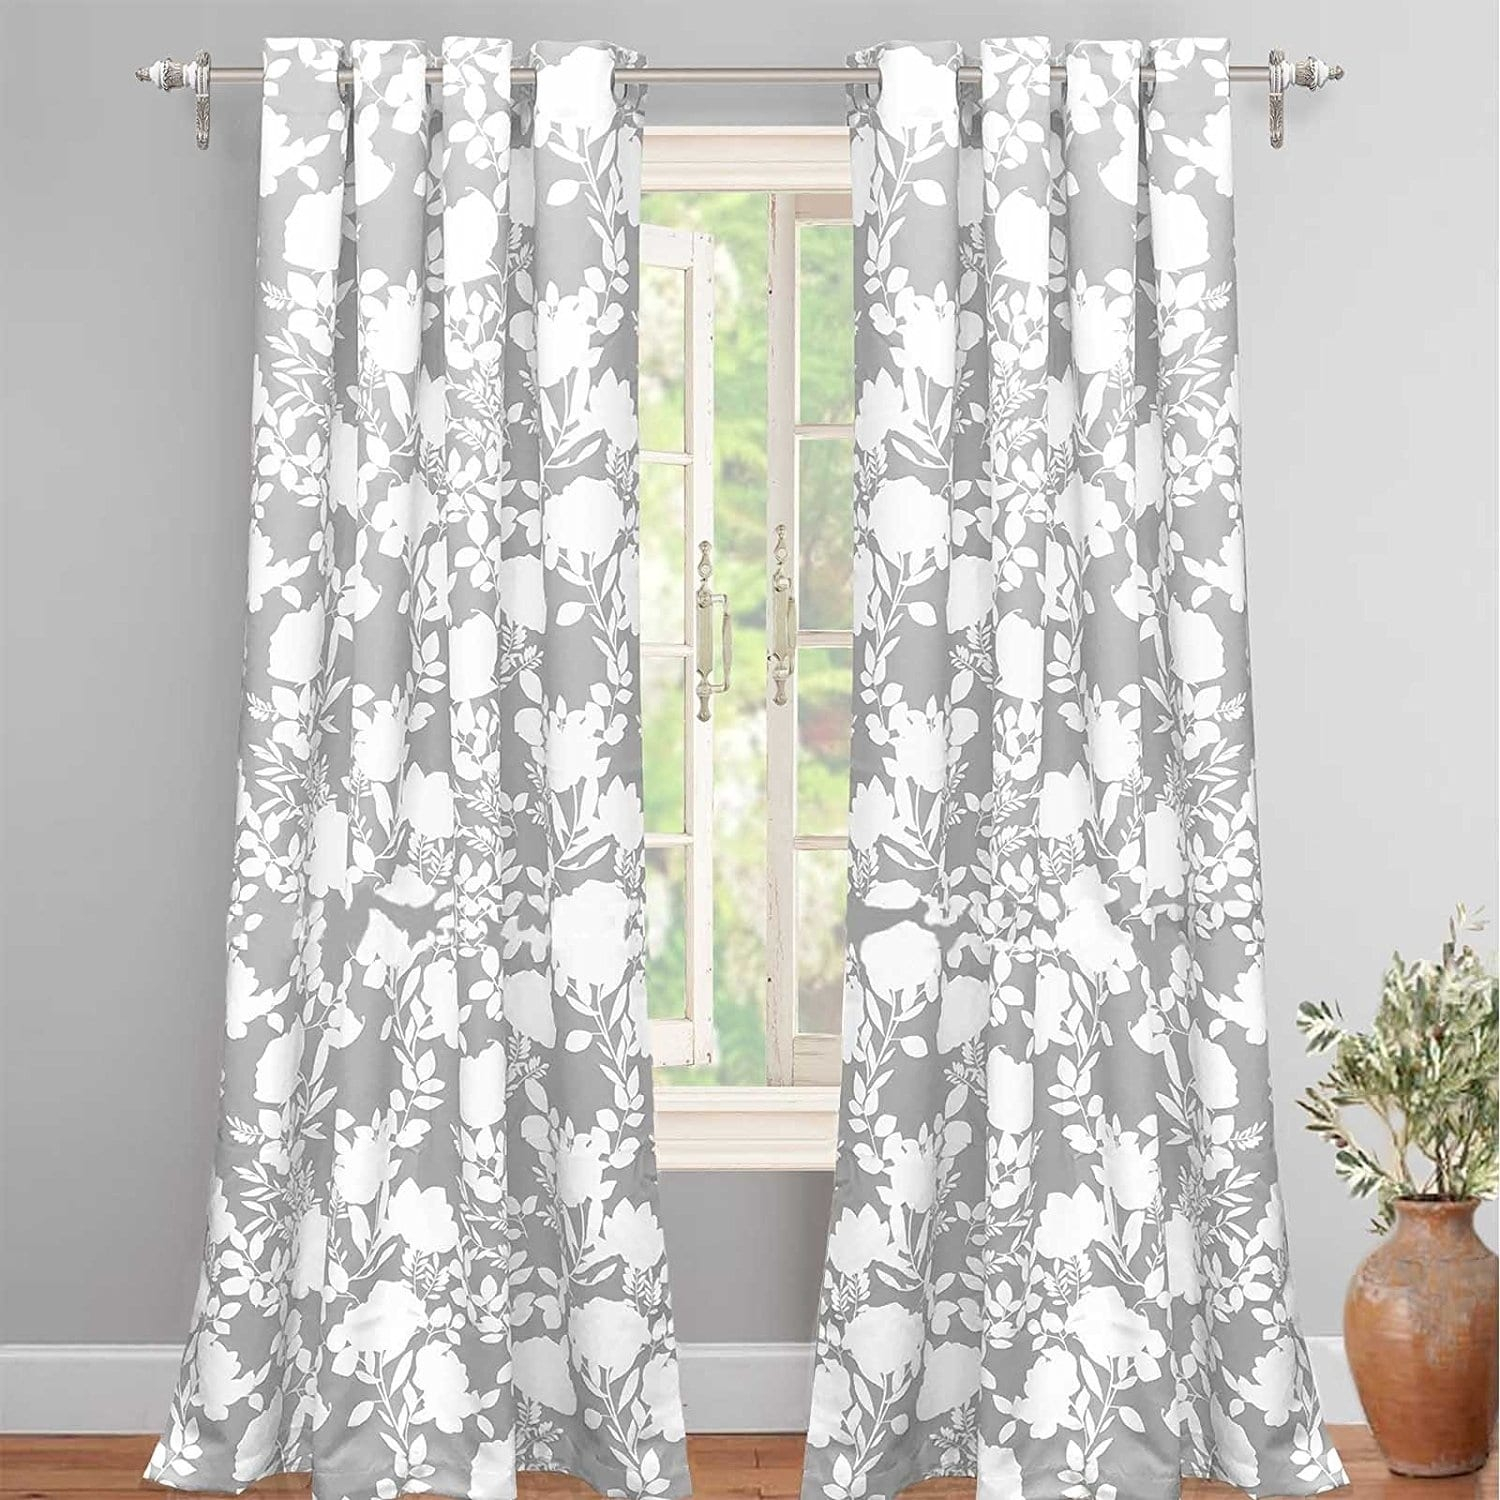 Driftaway Floral Delight Room Darkening Window Curtain Panel Inside Room Darkening Window Curtain Panel Pairs (View 13 of 20)